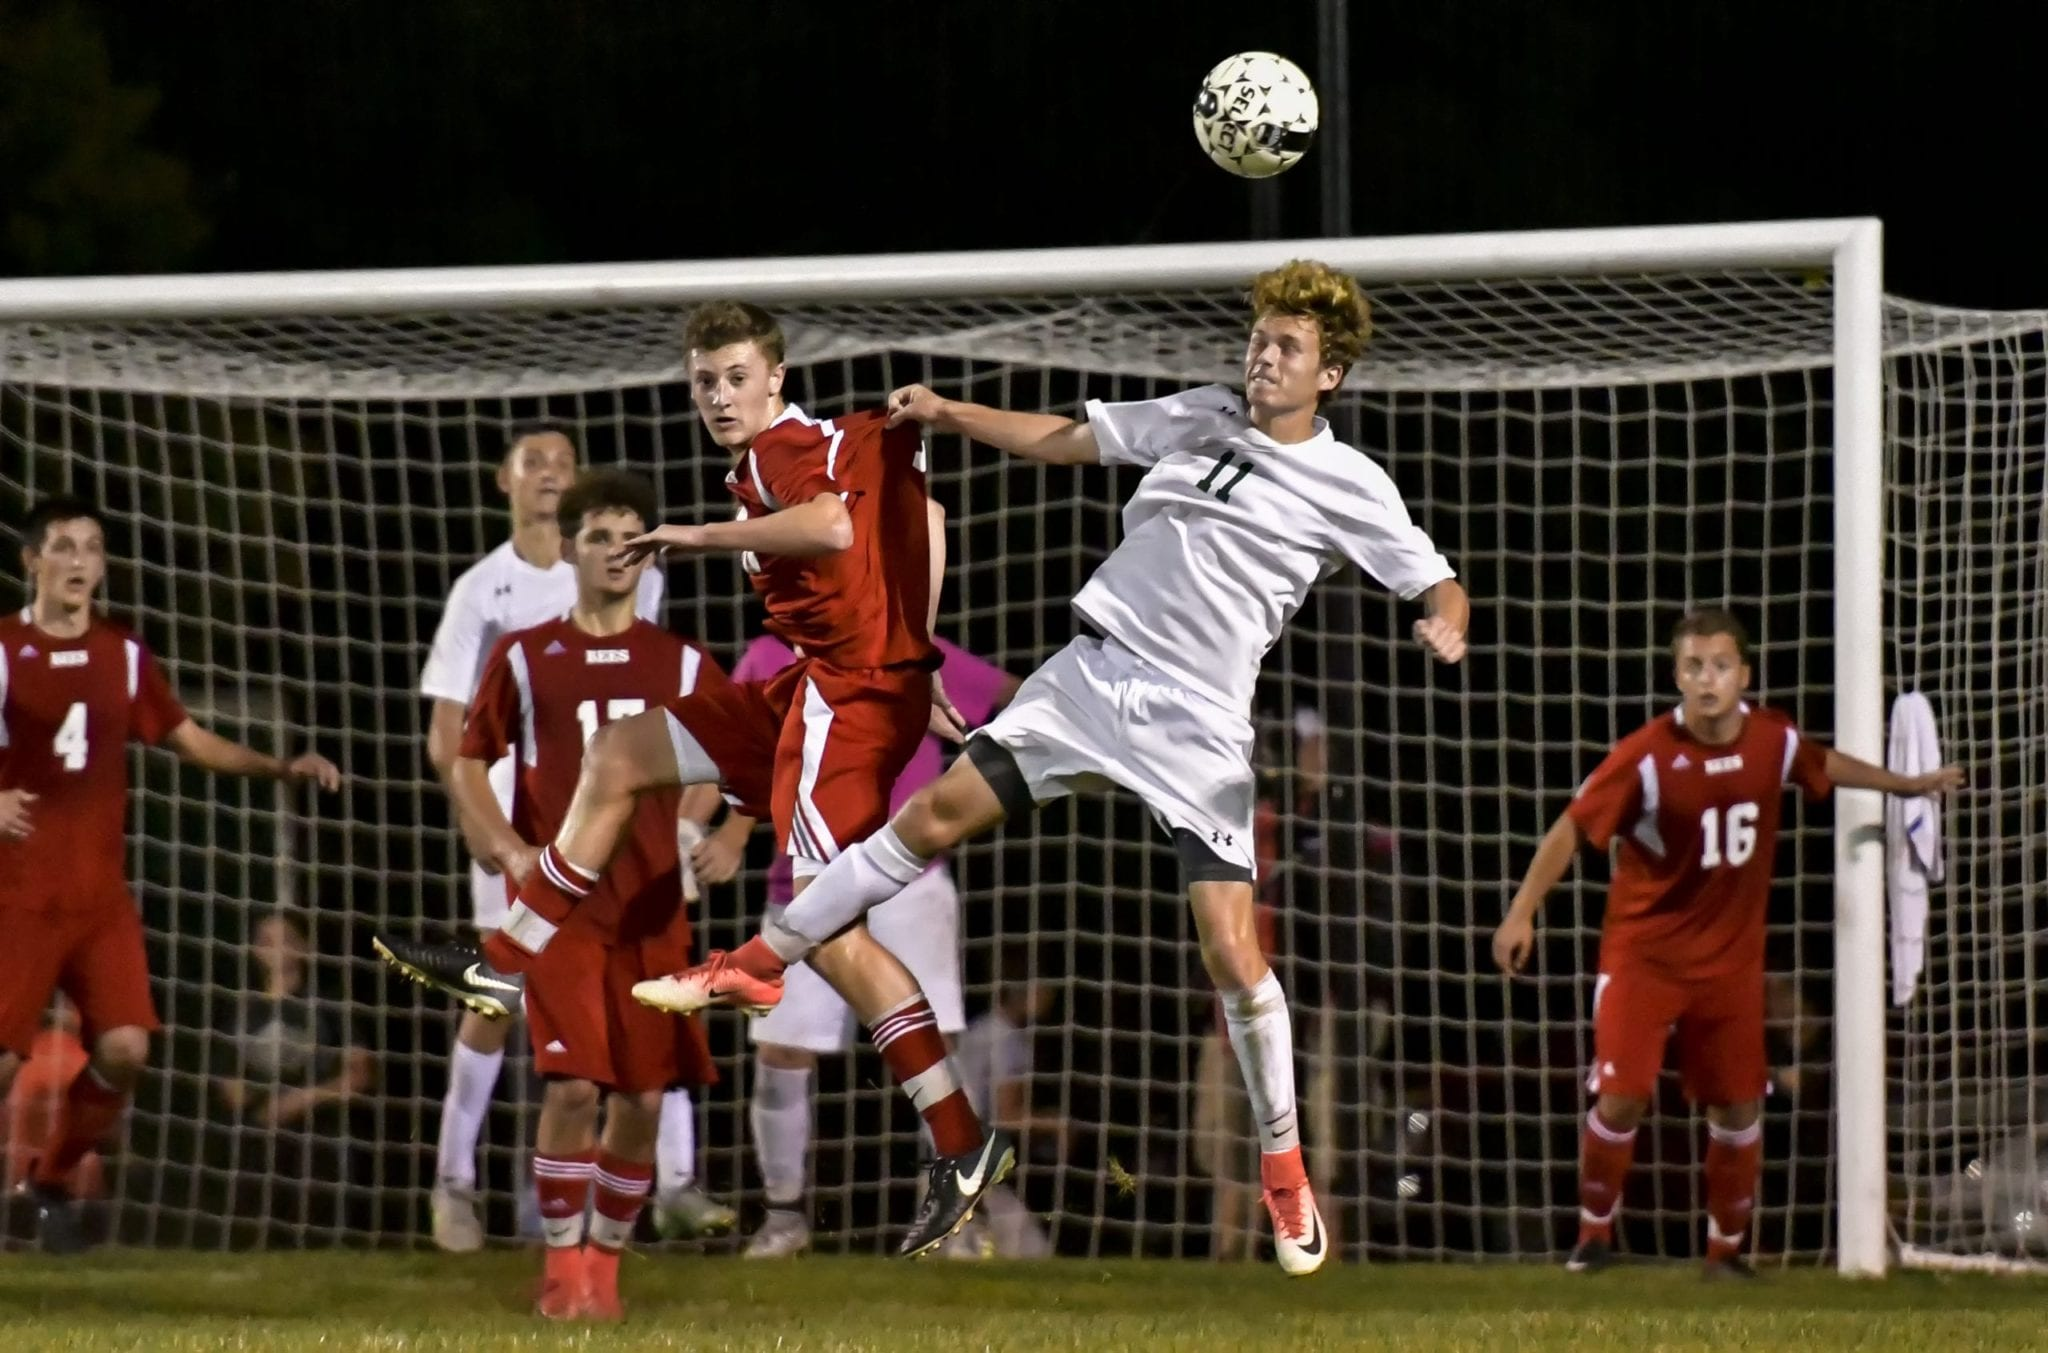 Soccer Hornets jump on B'ville, win 2-1